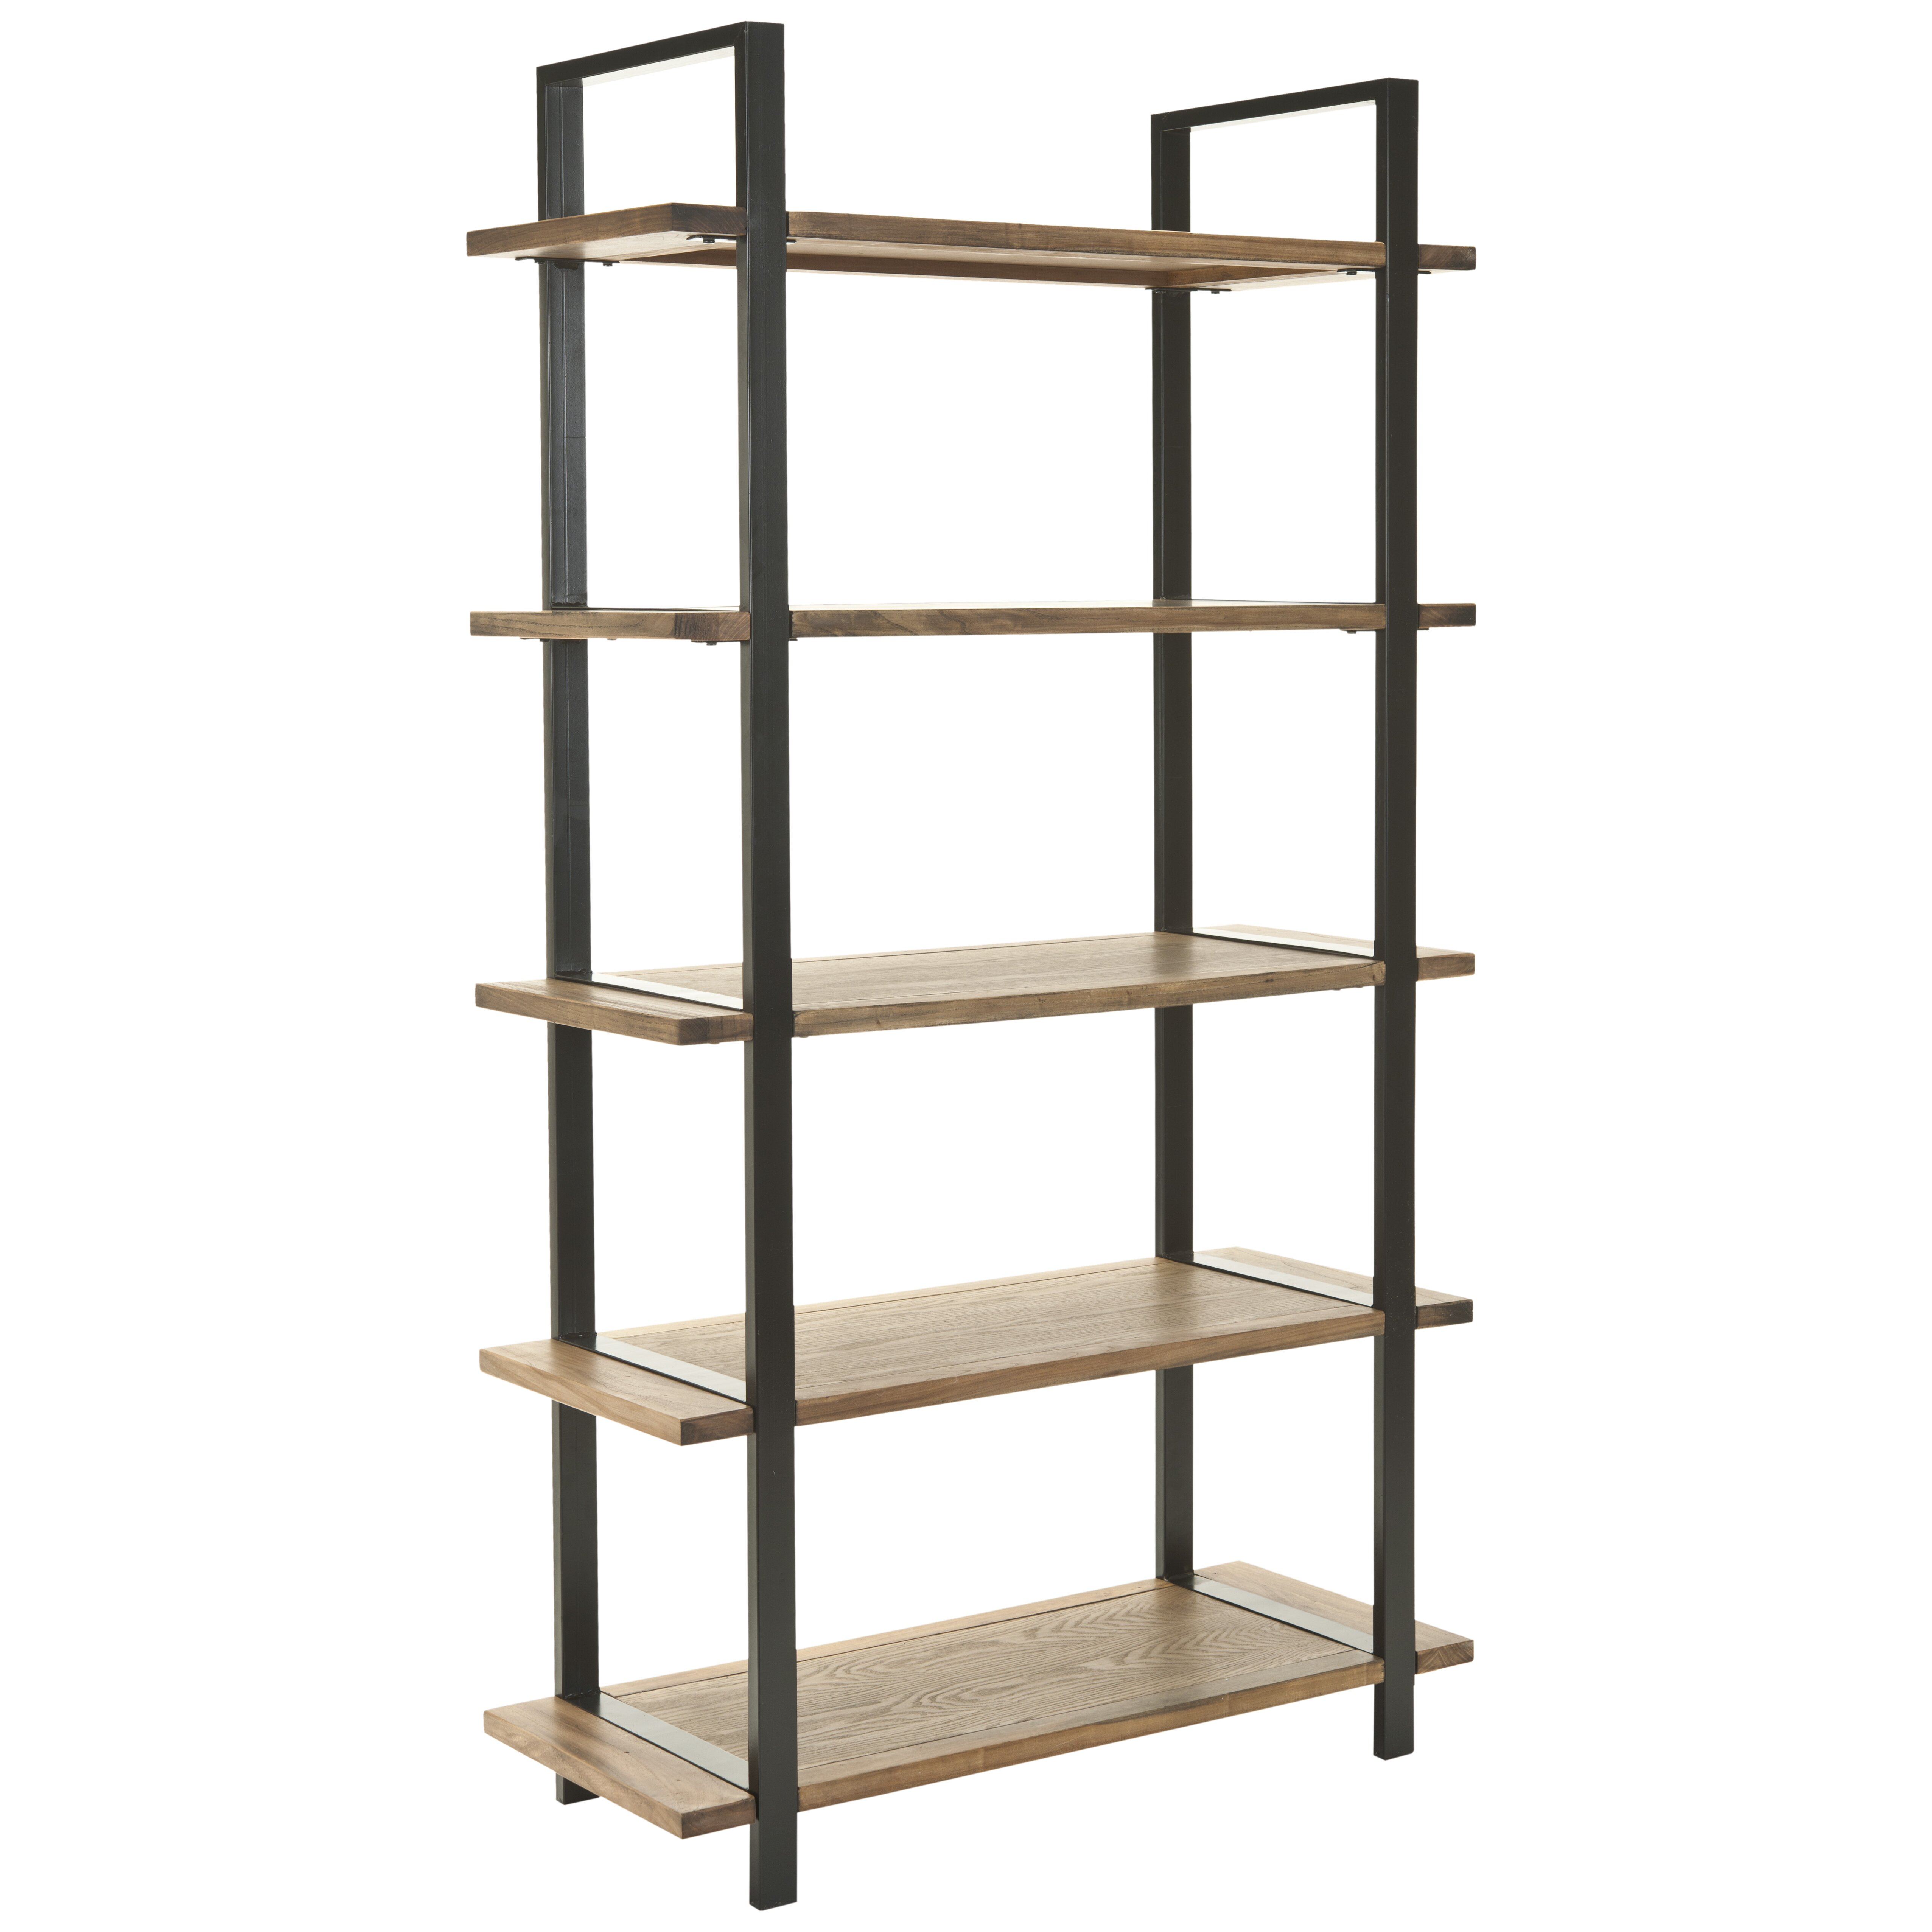 safavieh carol 65 etagere bookcase reviews wayfair. Black Bedroom Furniture Sets. Home Design Ideas